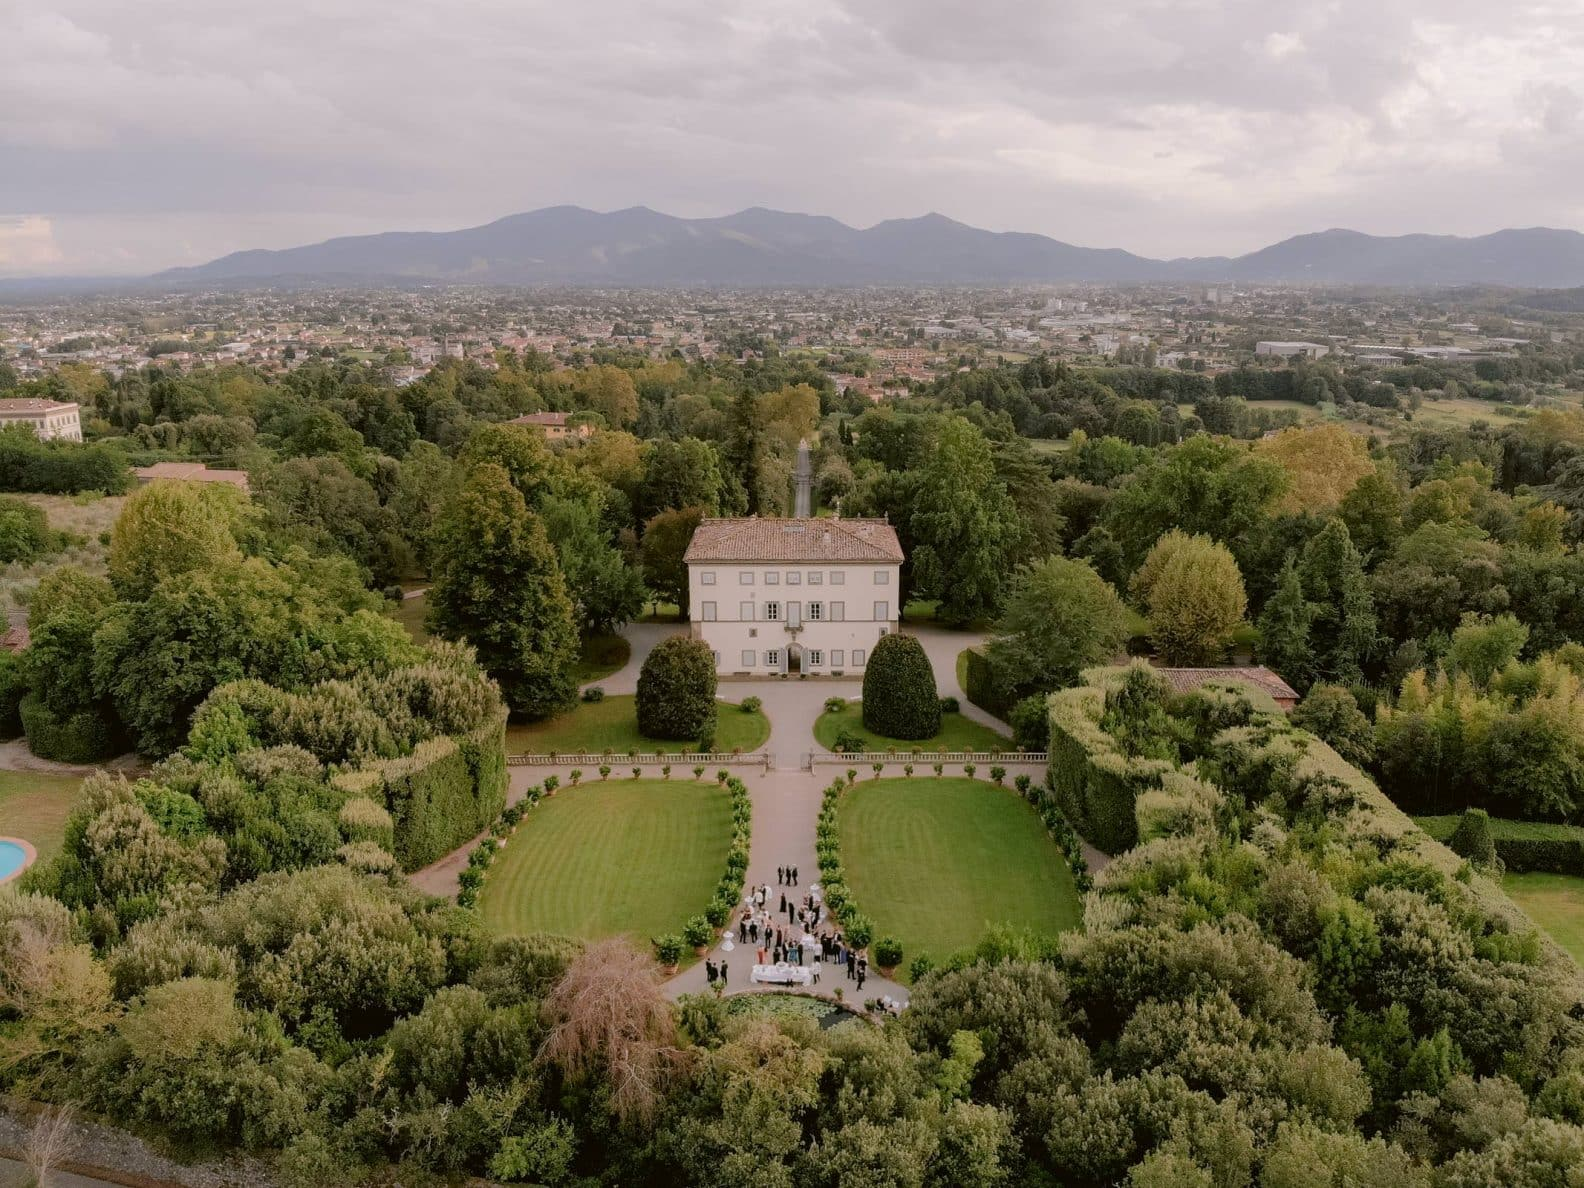 Villa Grabau in Lucca Tuscany from the drone